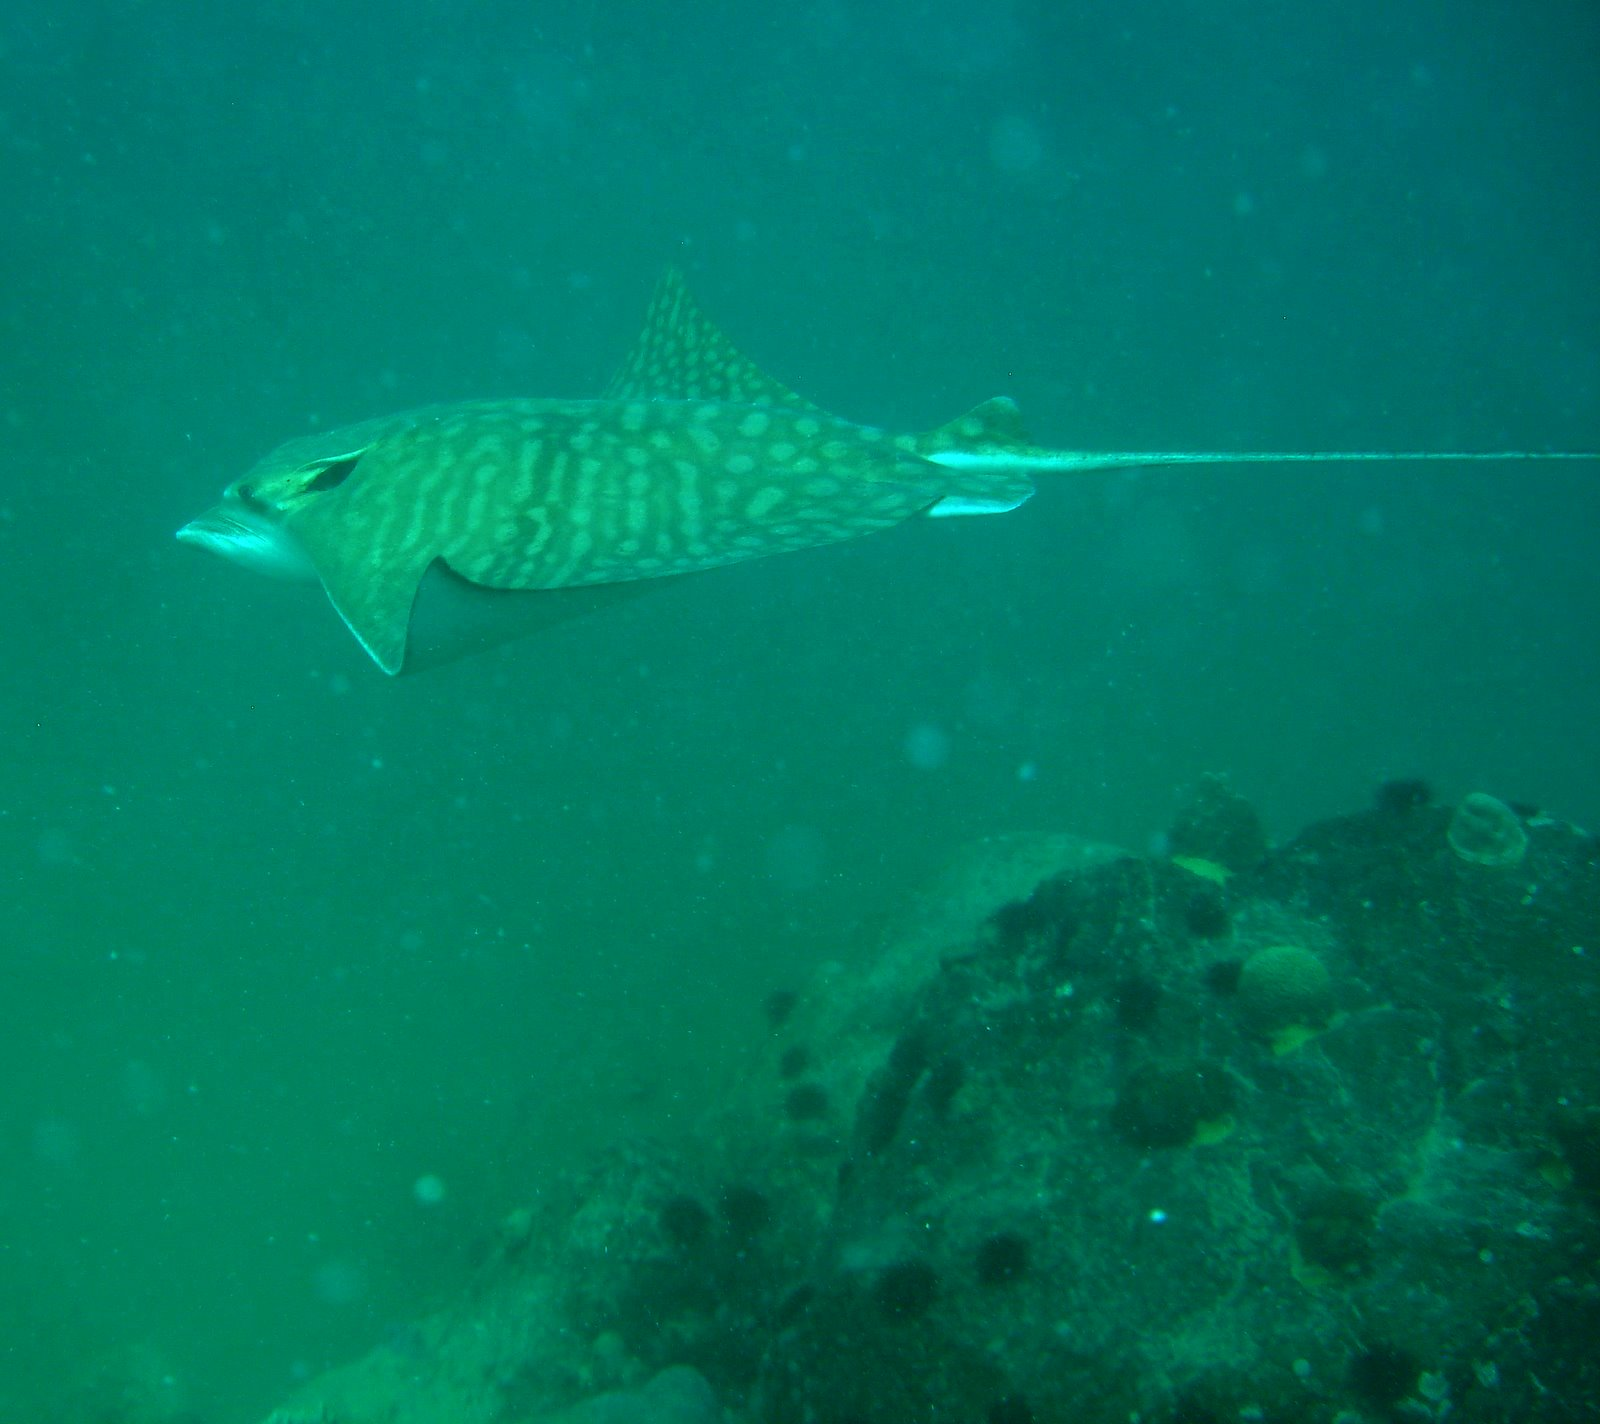 mottled-eagle-ray-Aetomylaeus-maculatus-endangered-marine-wildlife-fishing-nets